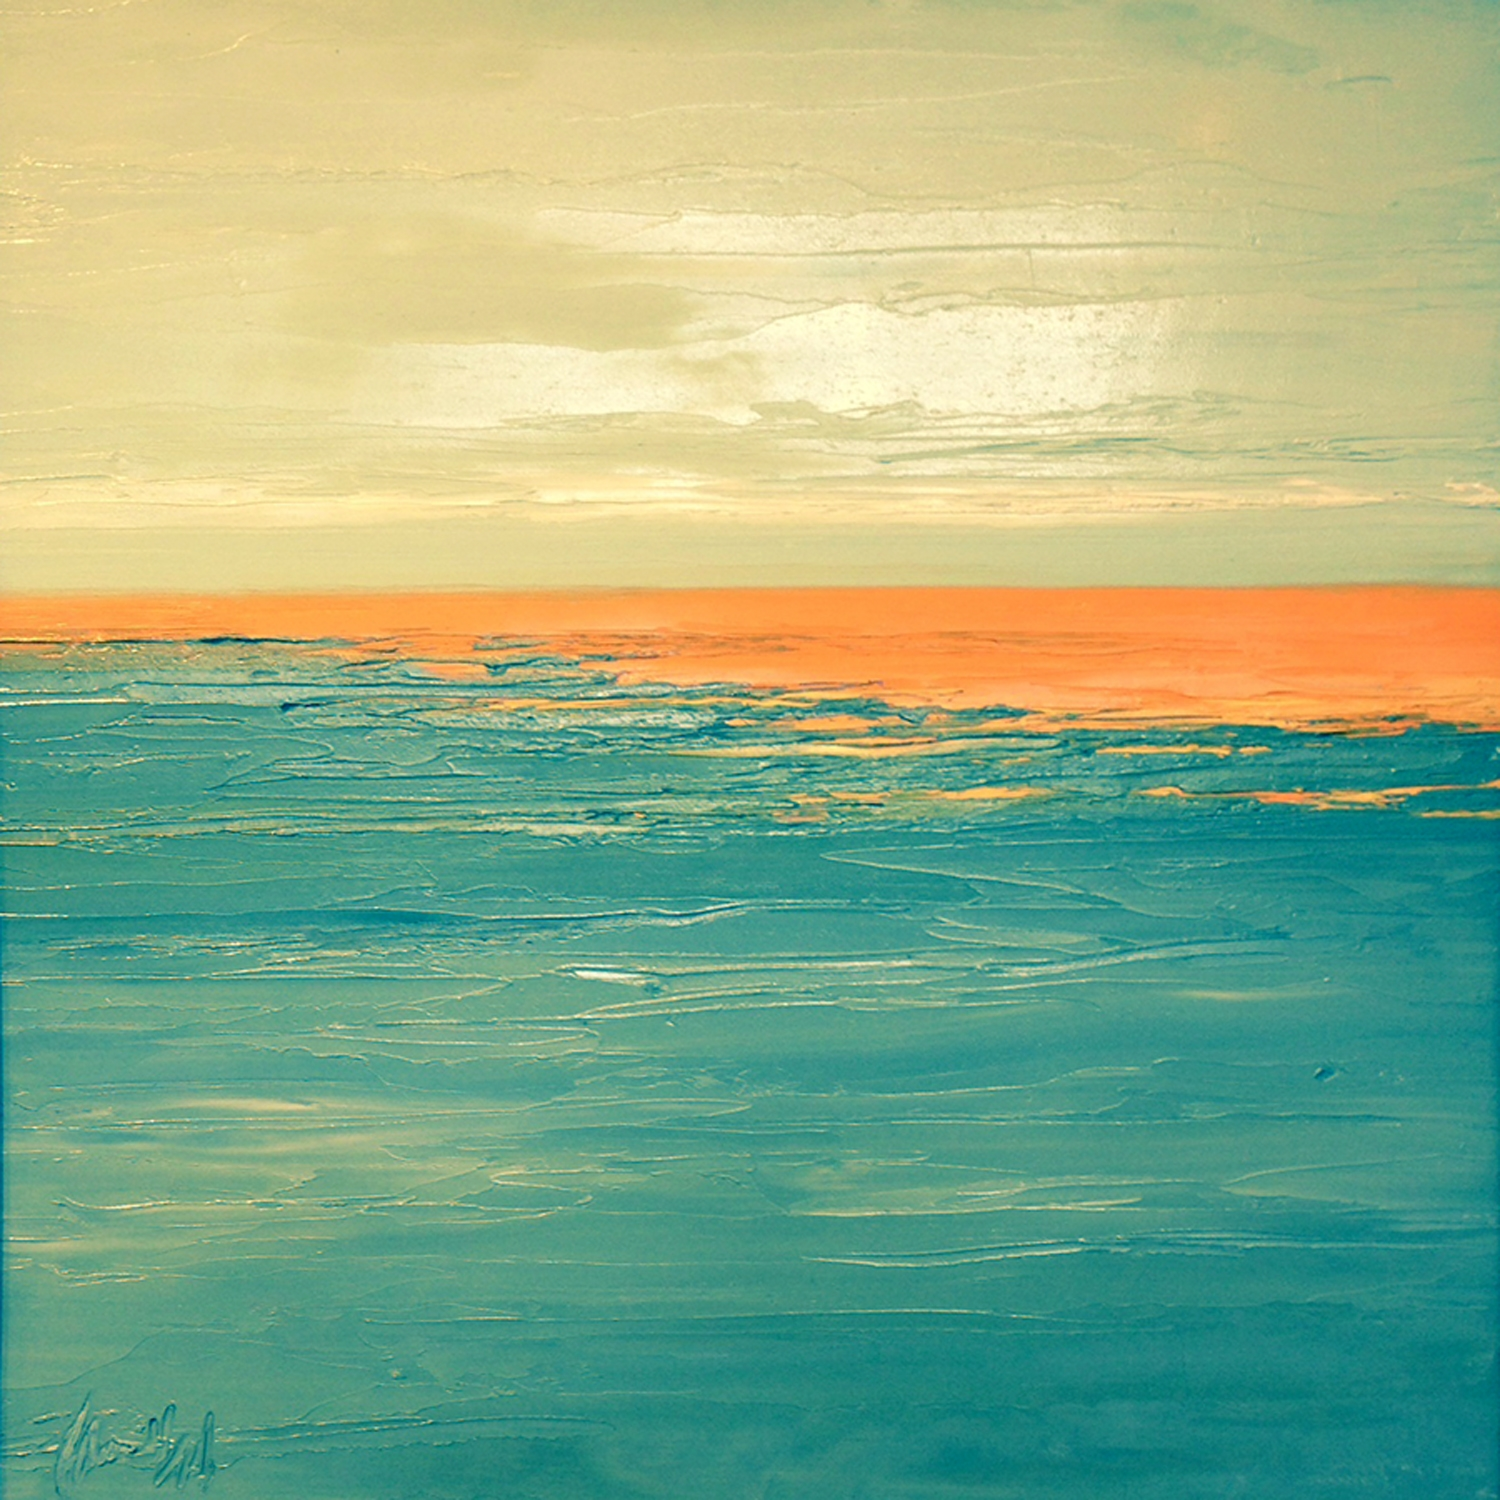 At The Horizon 3-27-2014, oil on board, 16 by 16 inches, 2014 - $1500 (sold)